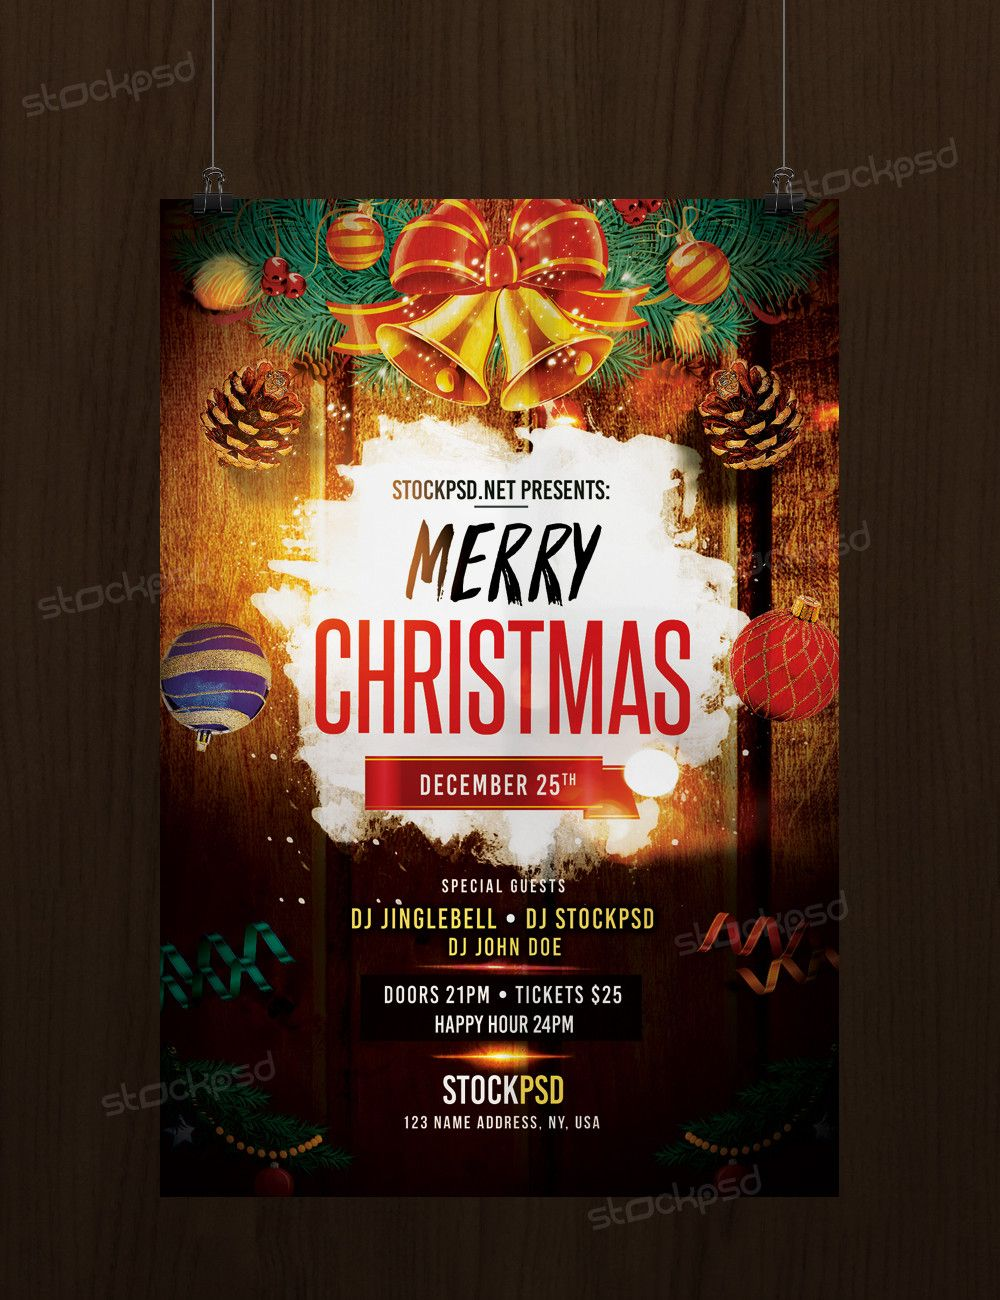 Download Merry Christmas Free Psd Flyer Template Free